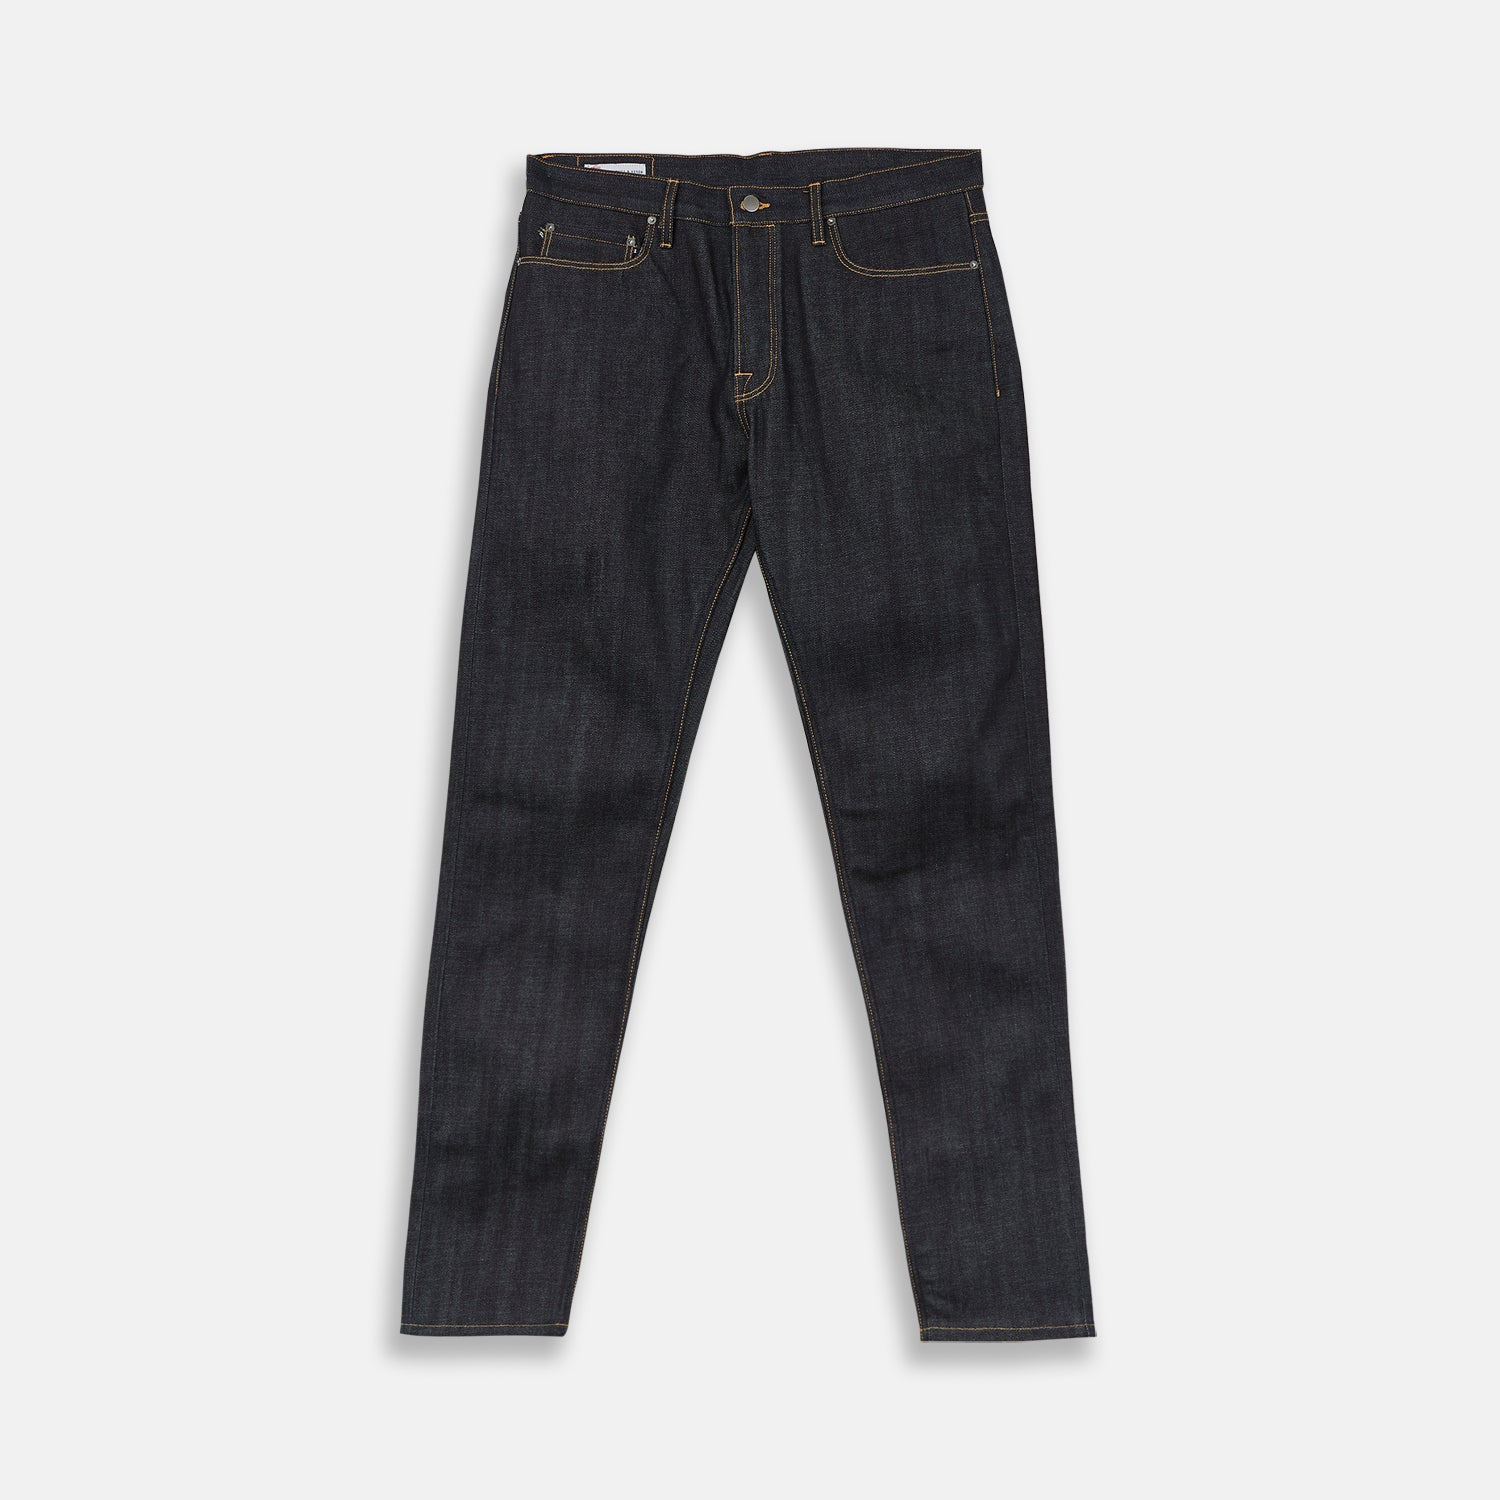 Indigo Japanese Selvedge Denim Jeans